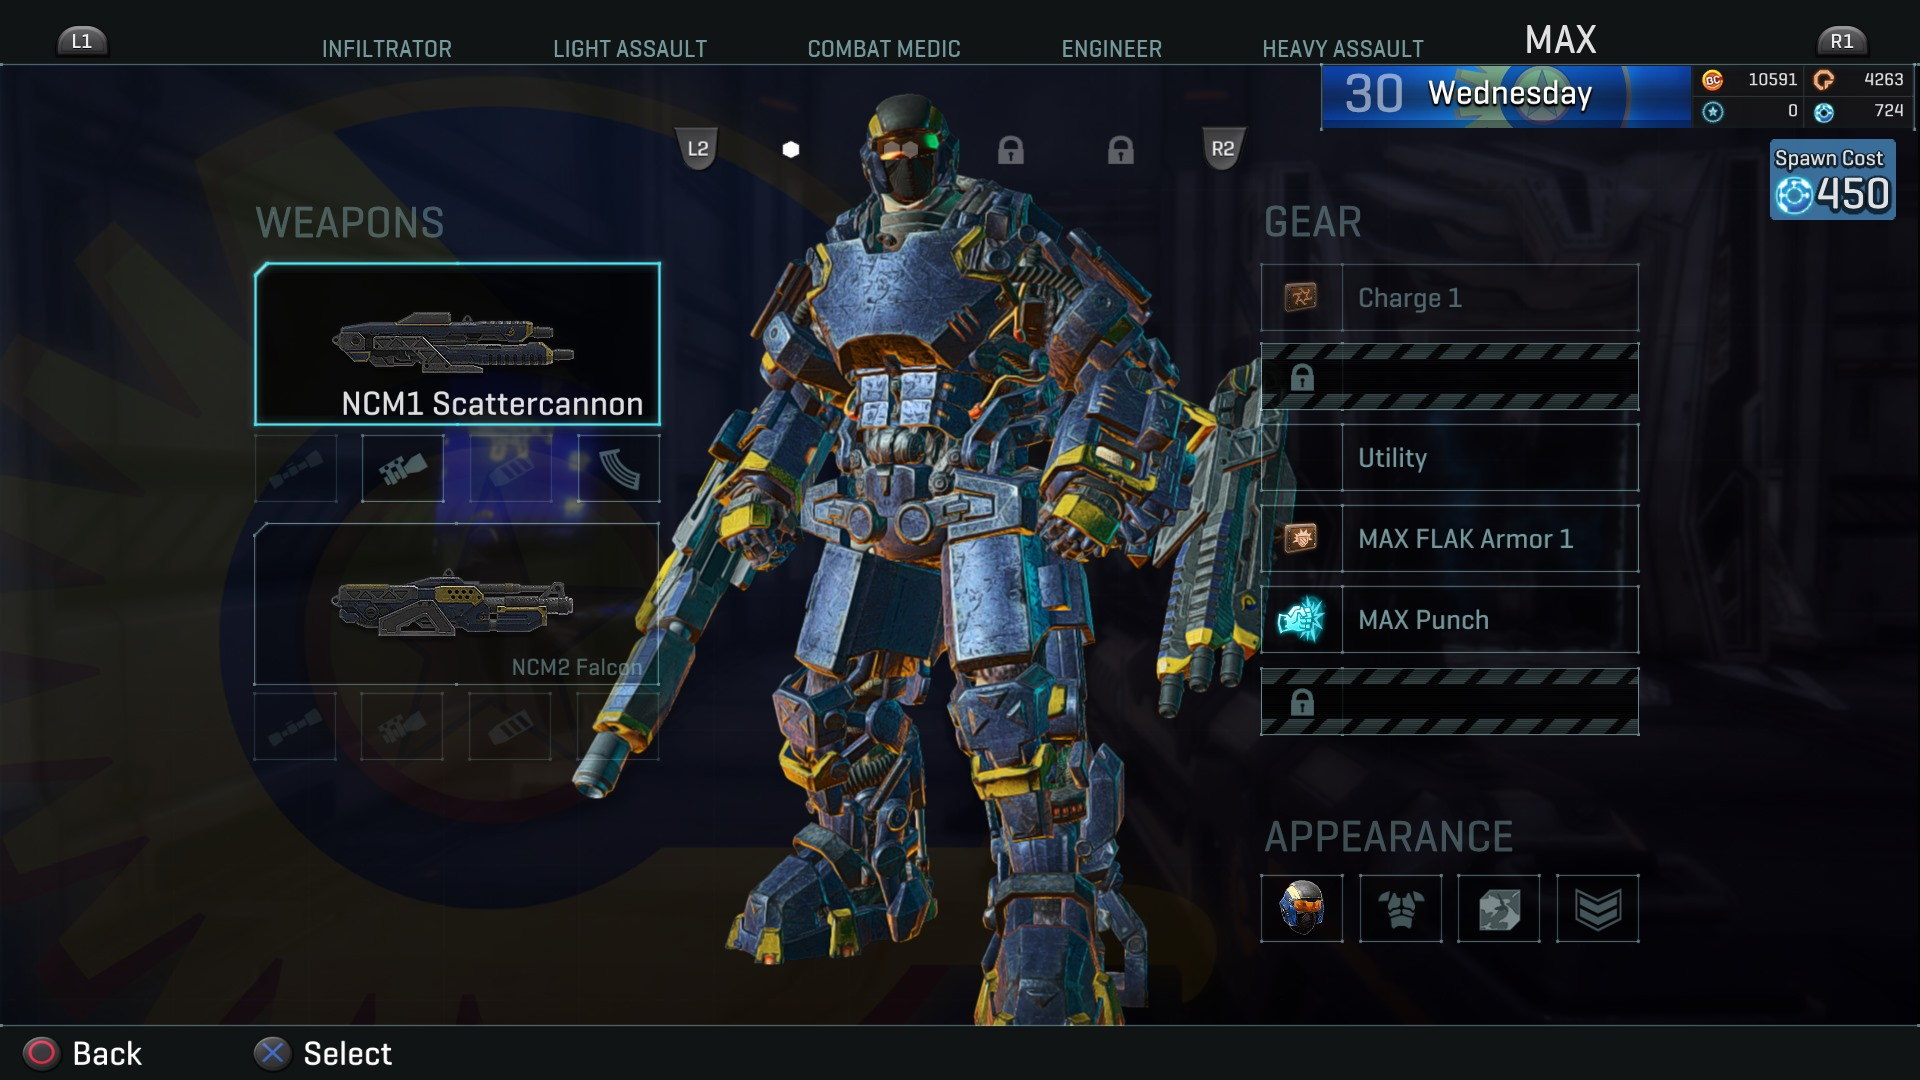 PlanetSide 2 Equipment Screen